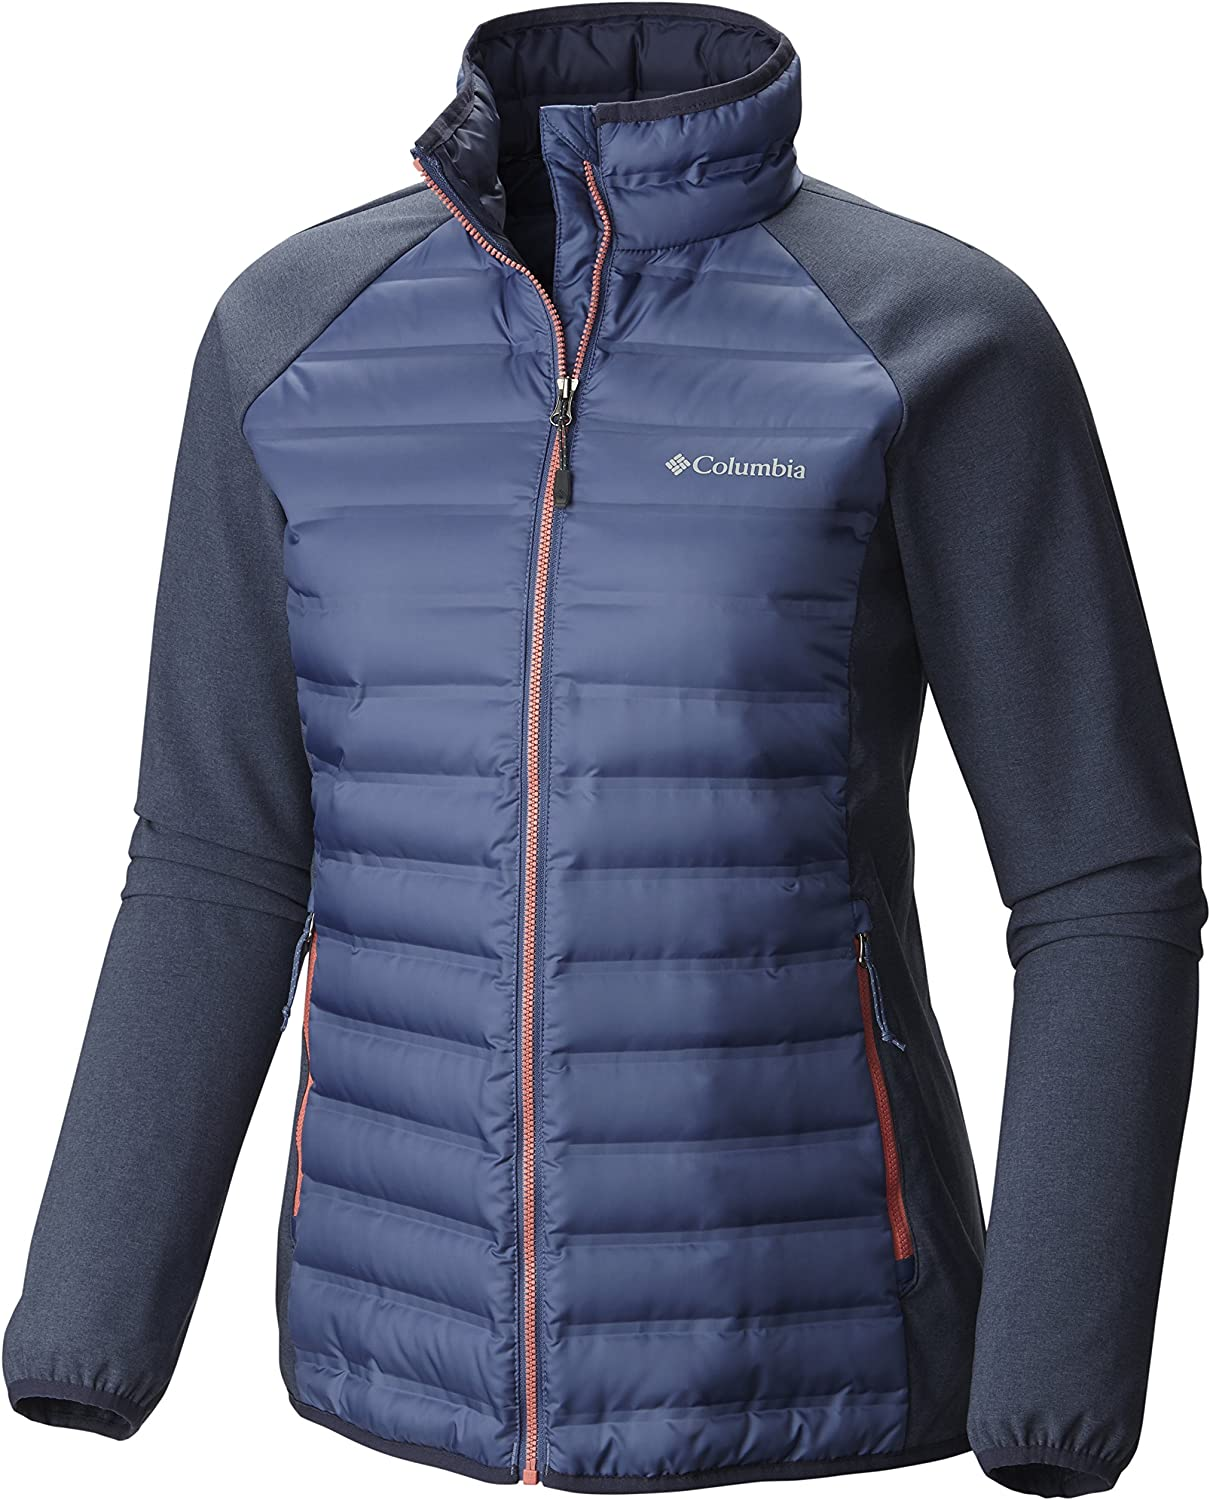 Columbia Women's Flash Forward H Down Jacket